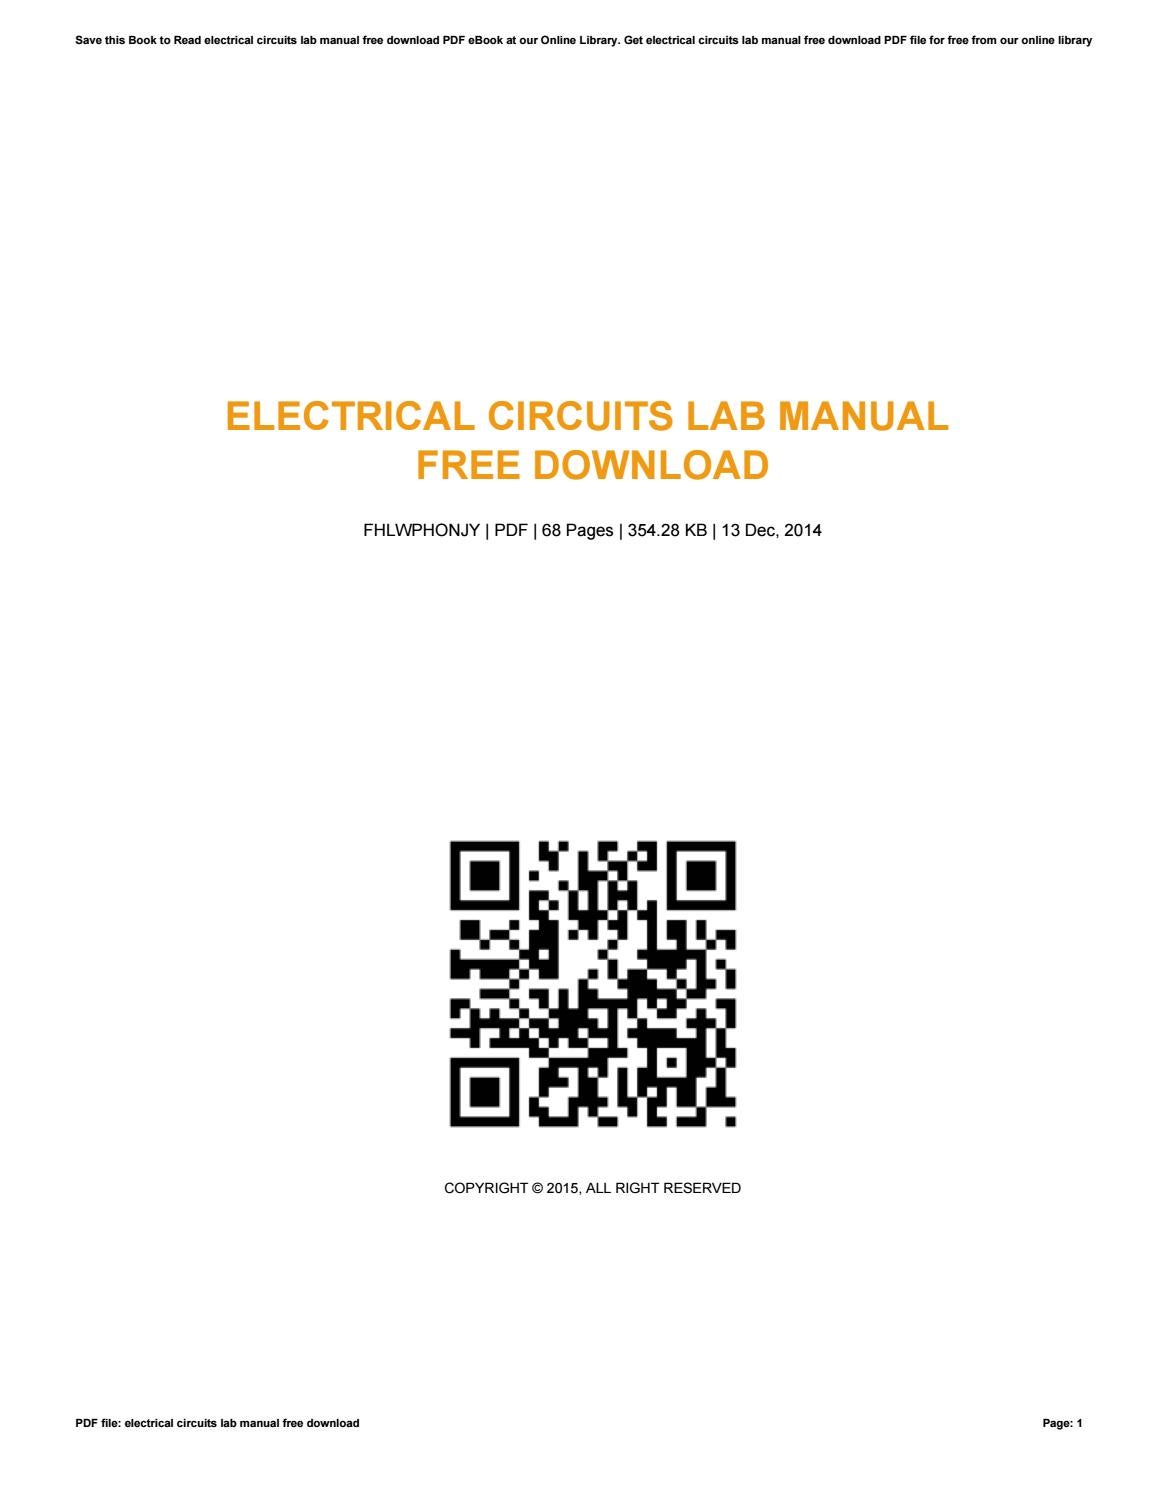 Electrical circuits lab manual free download by